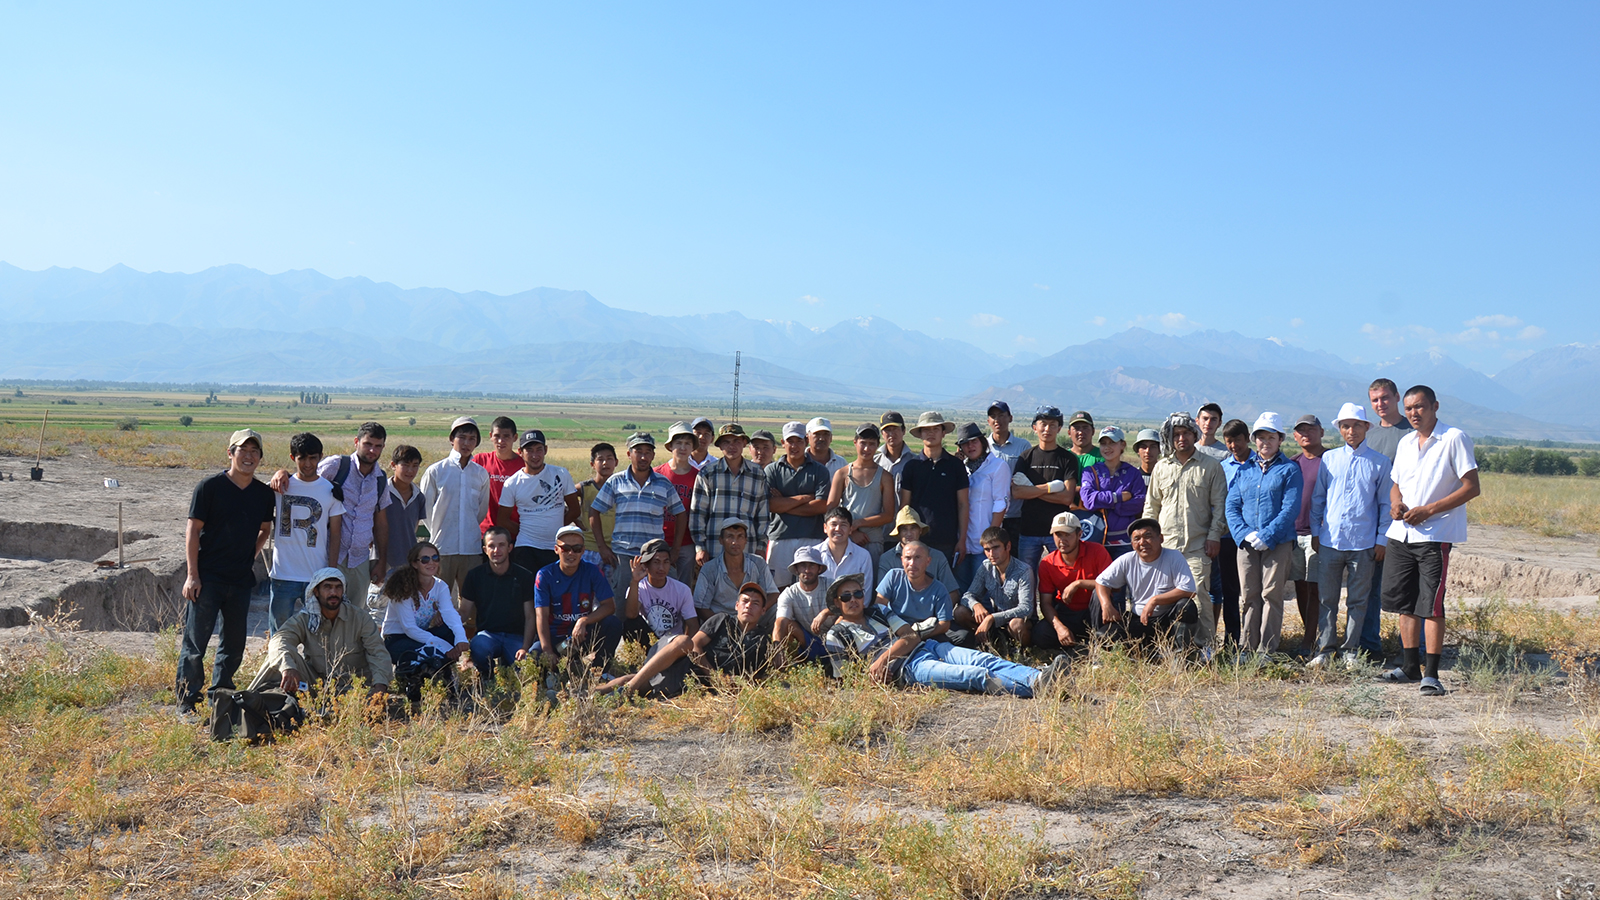 """Networking Core Centers for International Cooperation on Conservation of Cultural Heritage Project """"Training Workshop for the Protection of Cultural Heritage in Central Asia"""""""